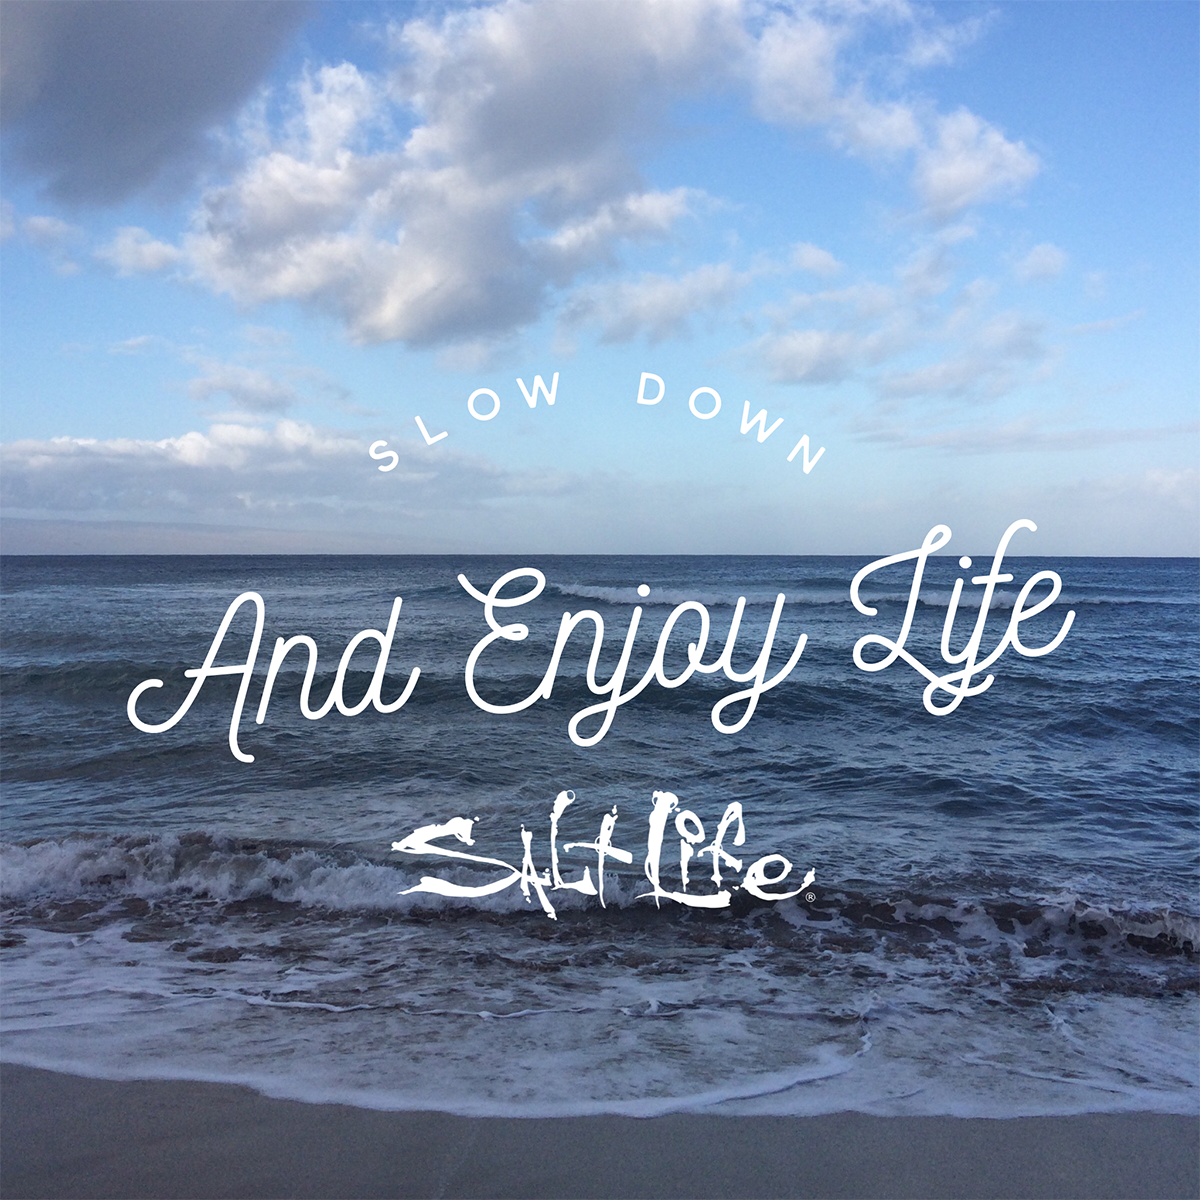 Enjoy Life Quotes: Slow Down And Enjoy Life! #LifeTheSaltLife